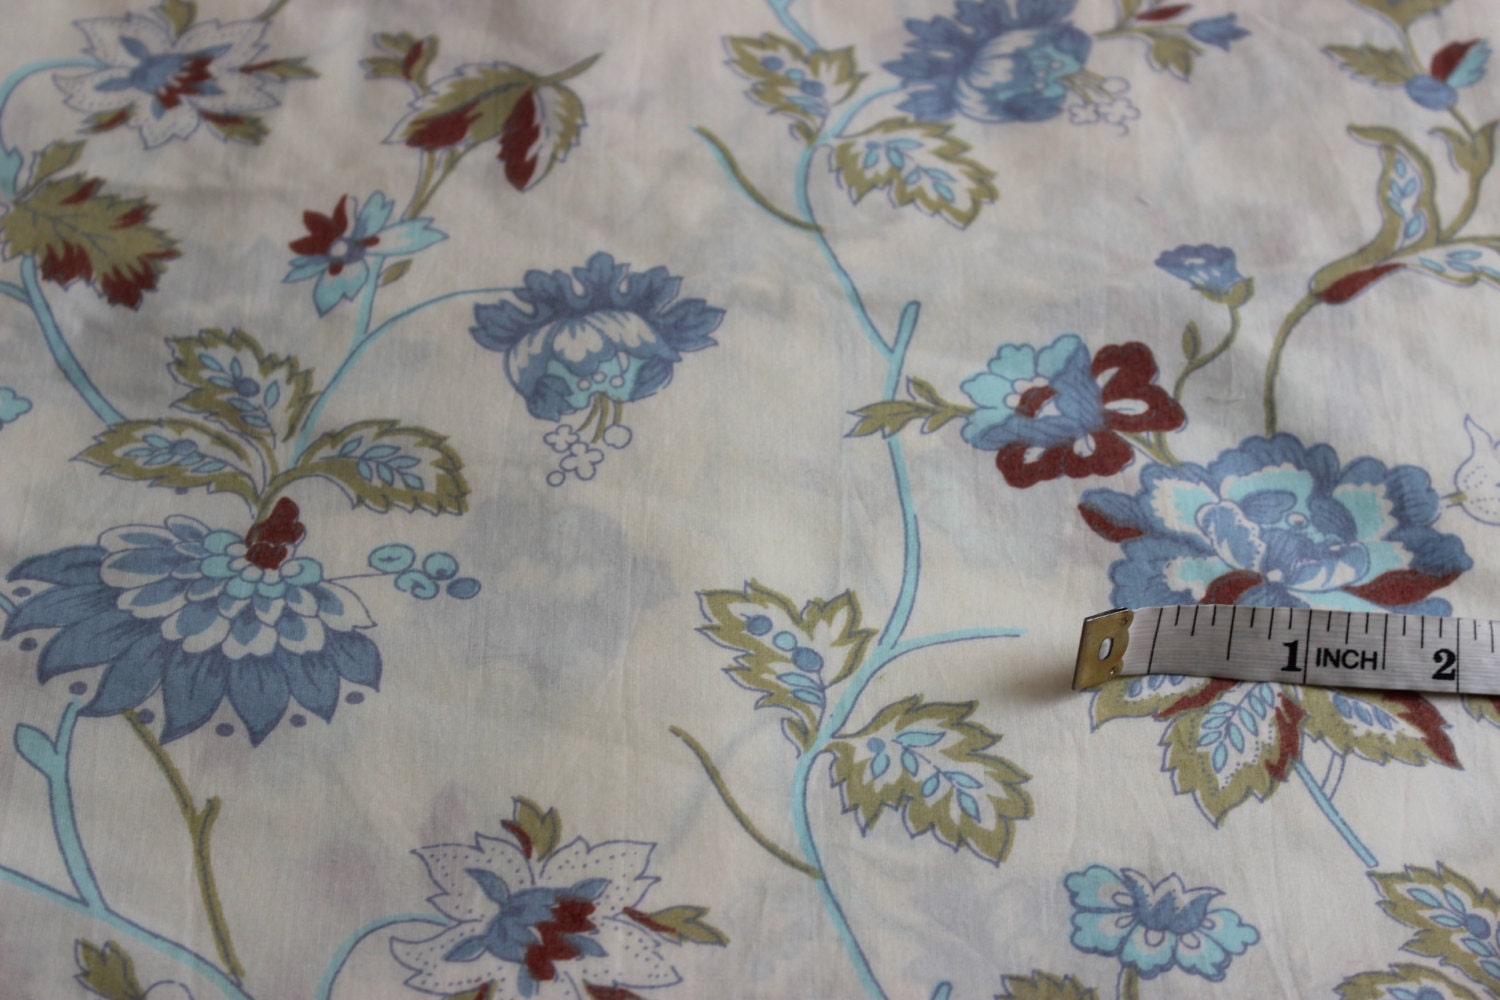 Cotton percale fabric by the yard cotton fabric wide for Cotton fabric by the yard